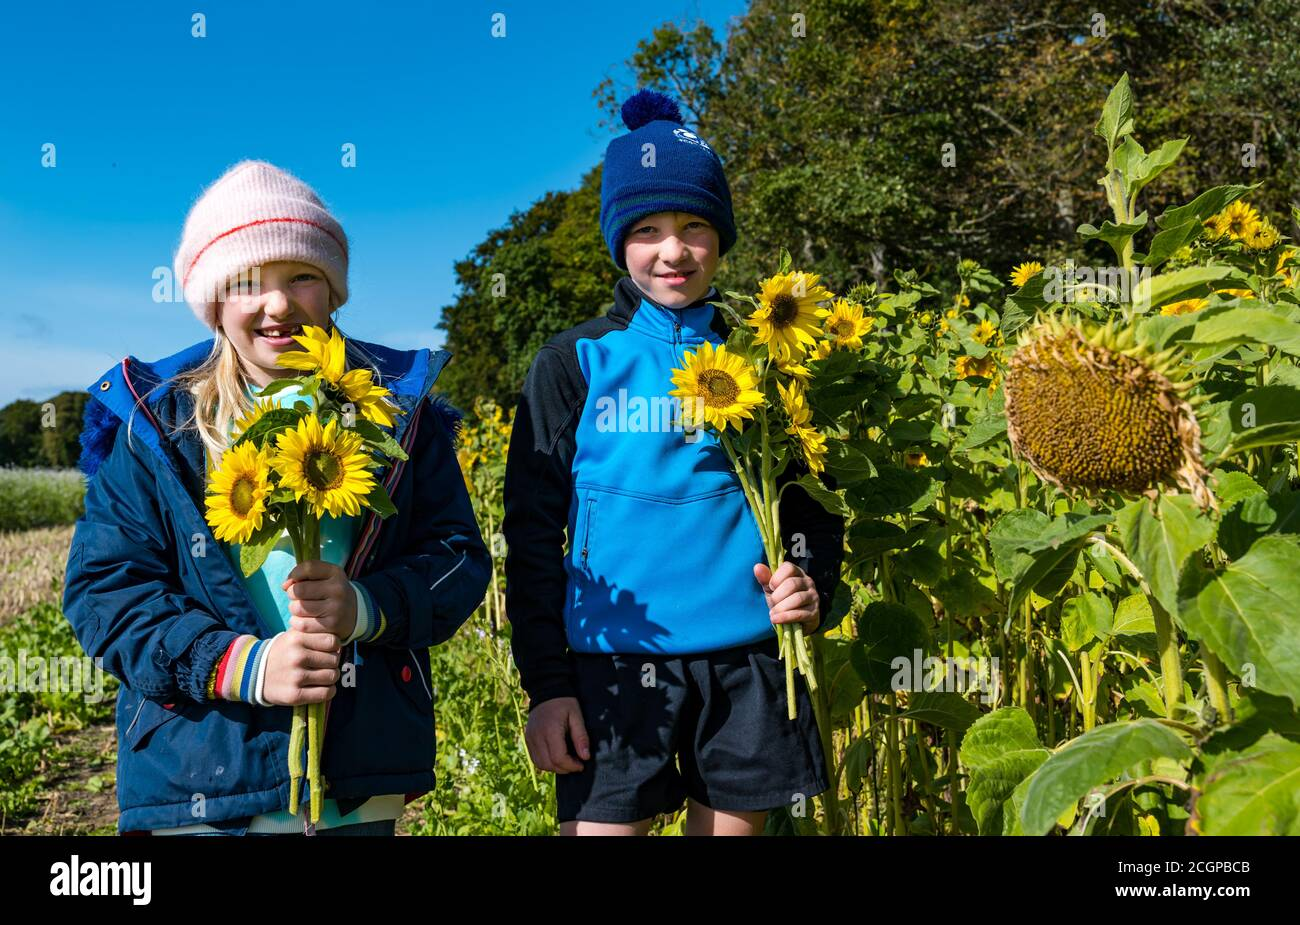 East Lothian, Scotland, United Kingdom, 12th September 2020. UK Weather: sunflower picking. Luffness Mains Farm is offering locals the opportunity to pick a maximum of 15 sunflowers per family on a sunny day. Pictured: Matilda, aged 8 years and her brother Hamish, aged 9 years, holding bunches of sunflowers Stock Photo